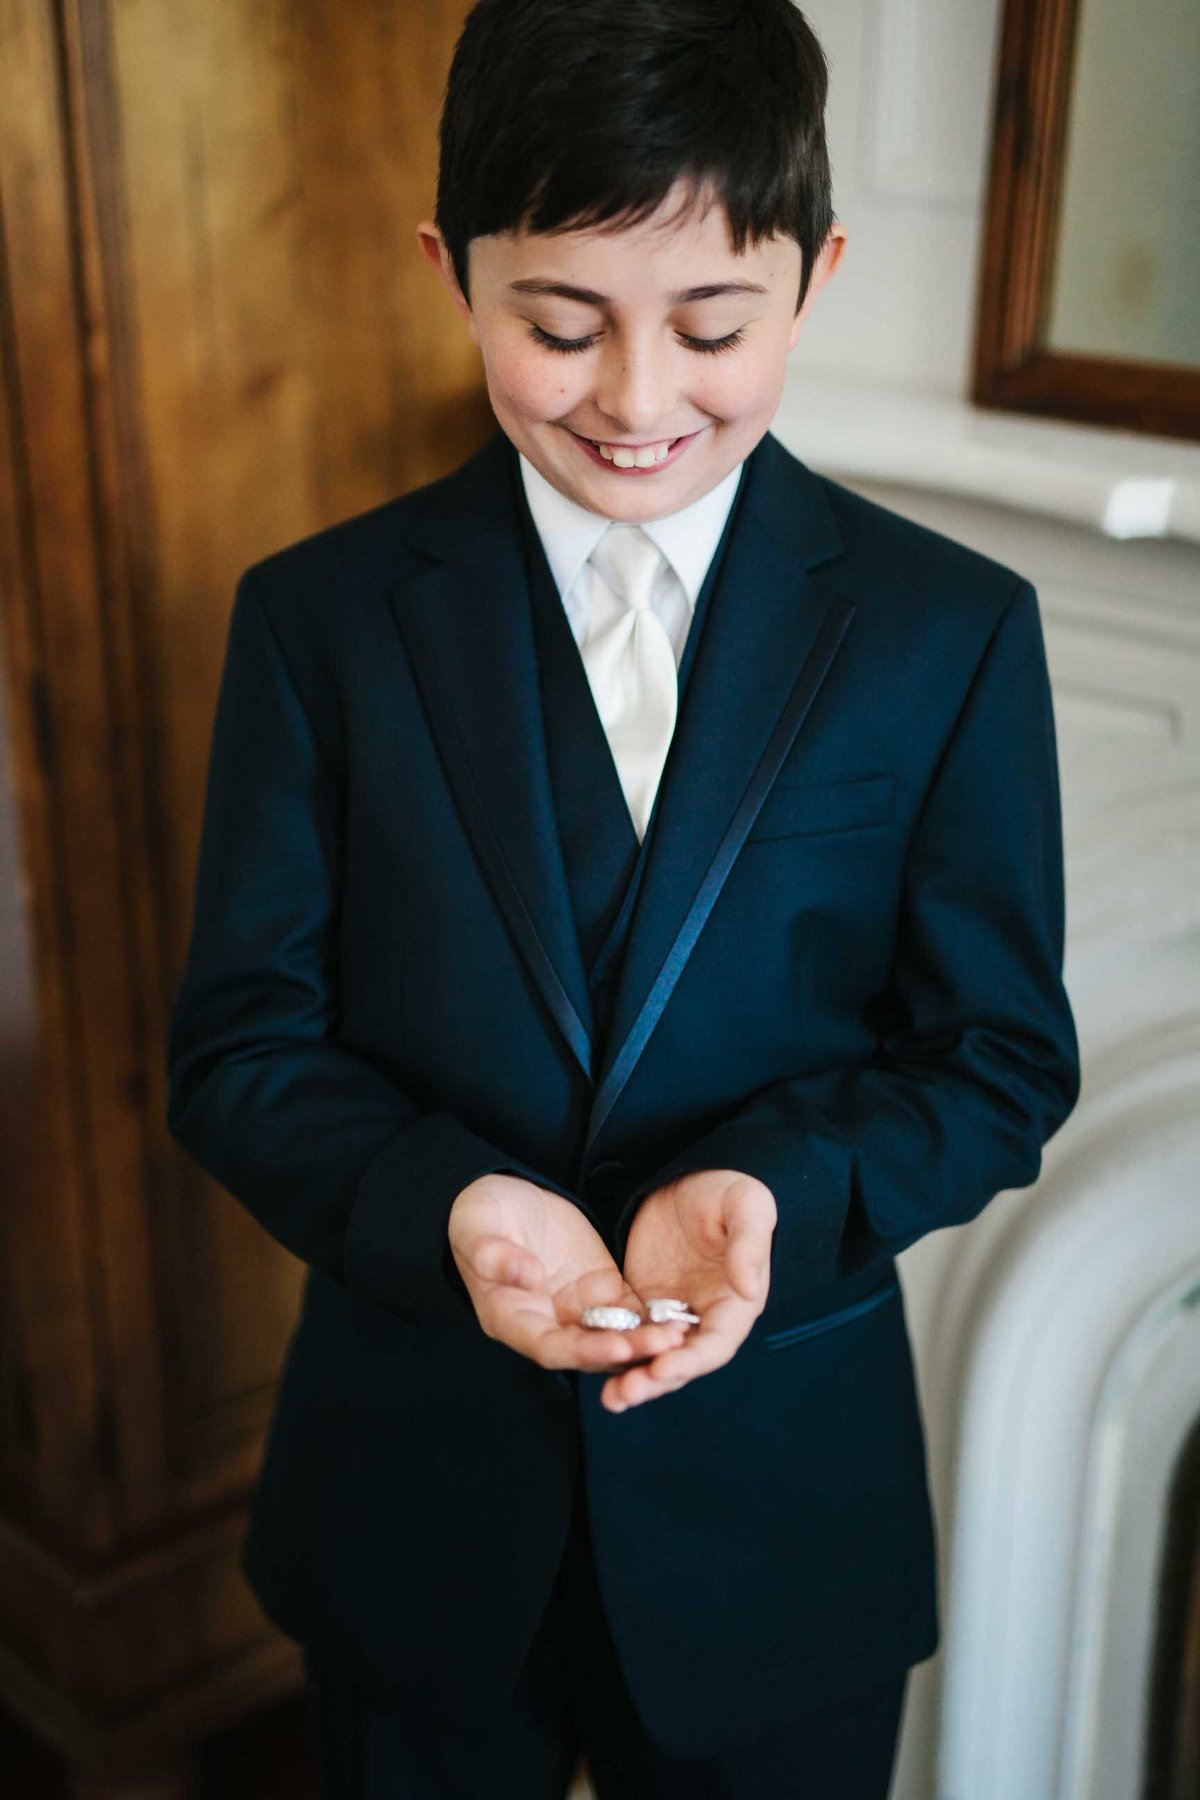 Melissa Kilner Photography Seattle Wedding Photographer 079